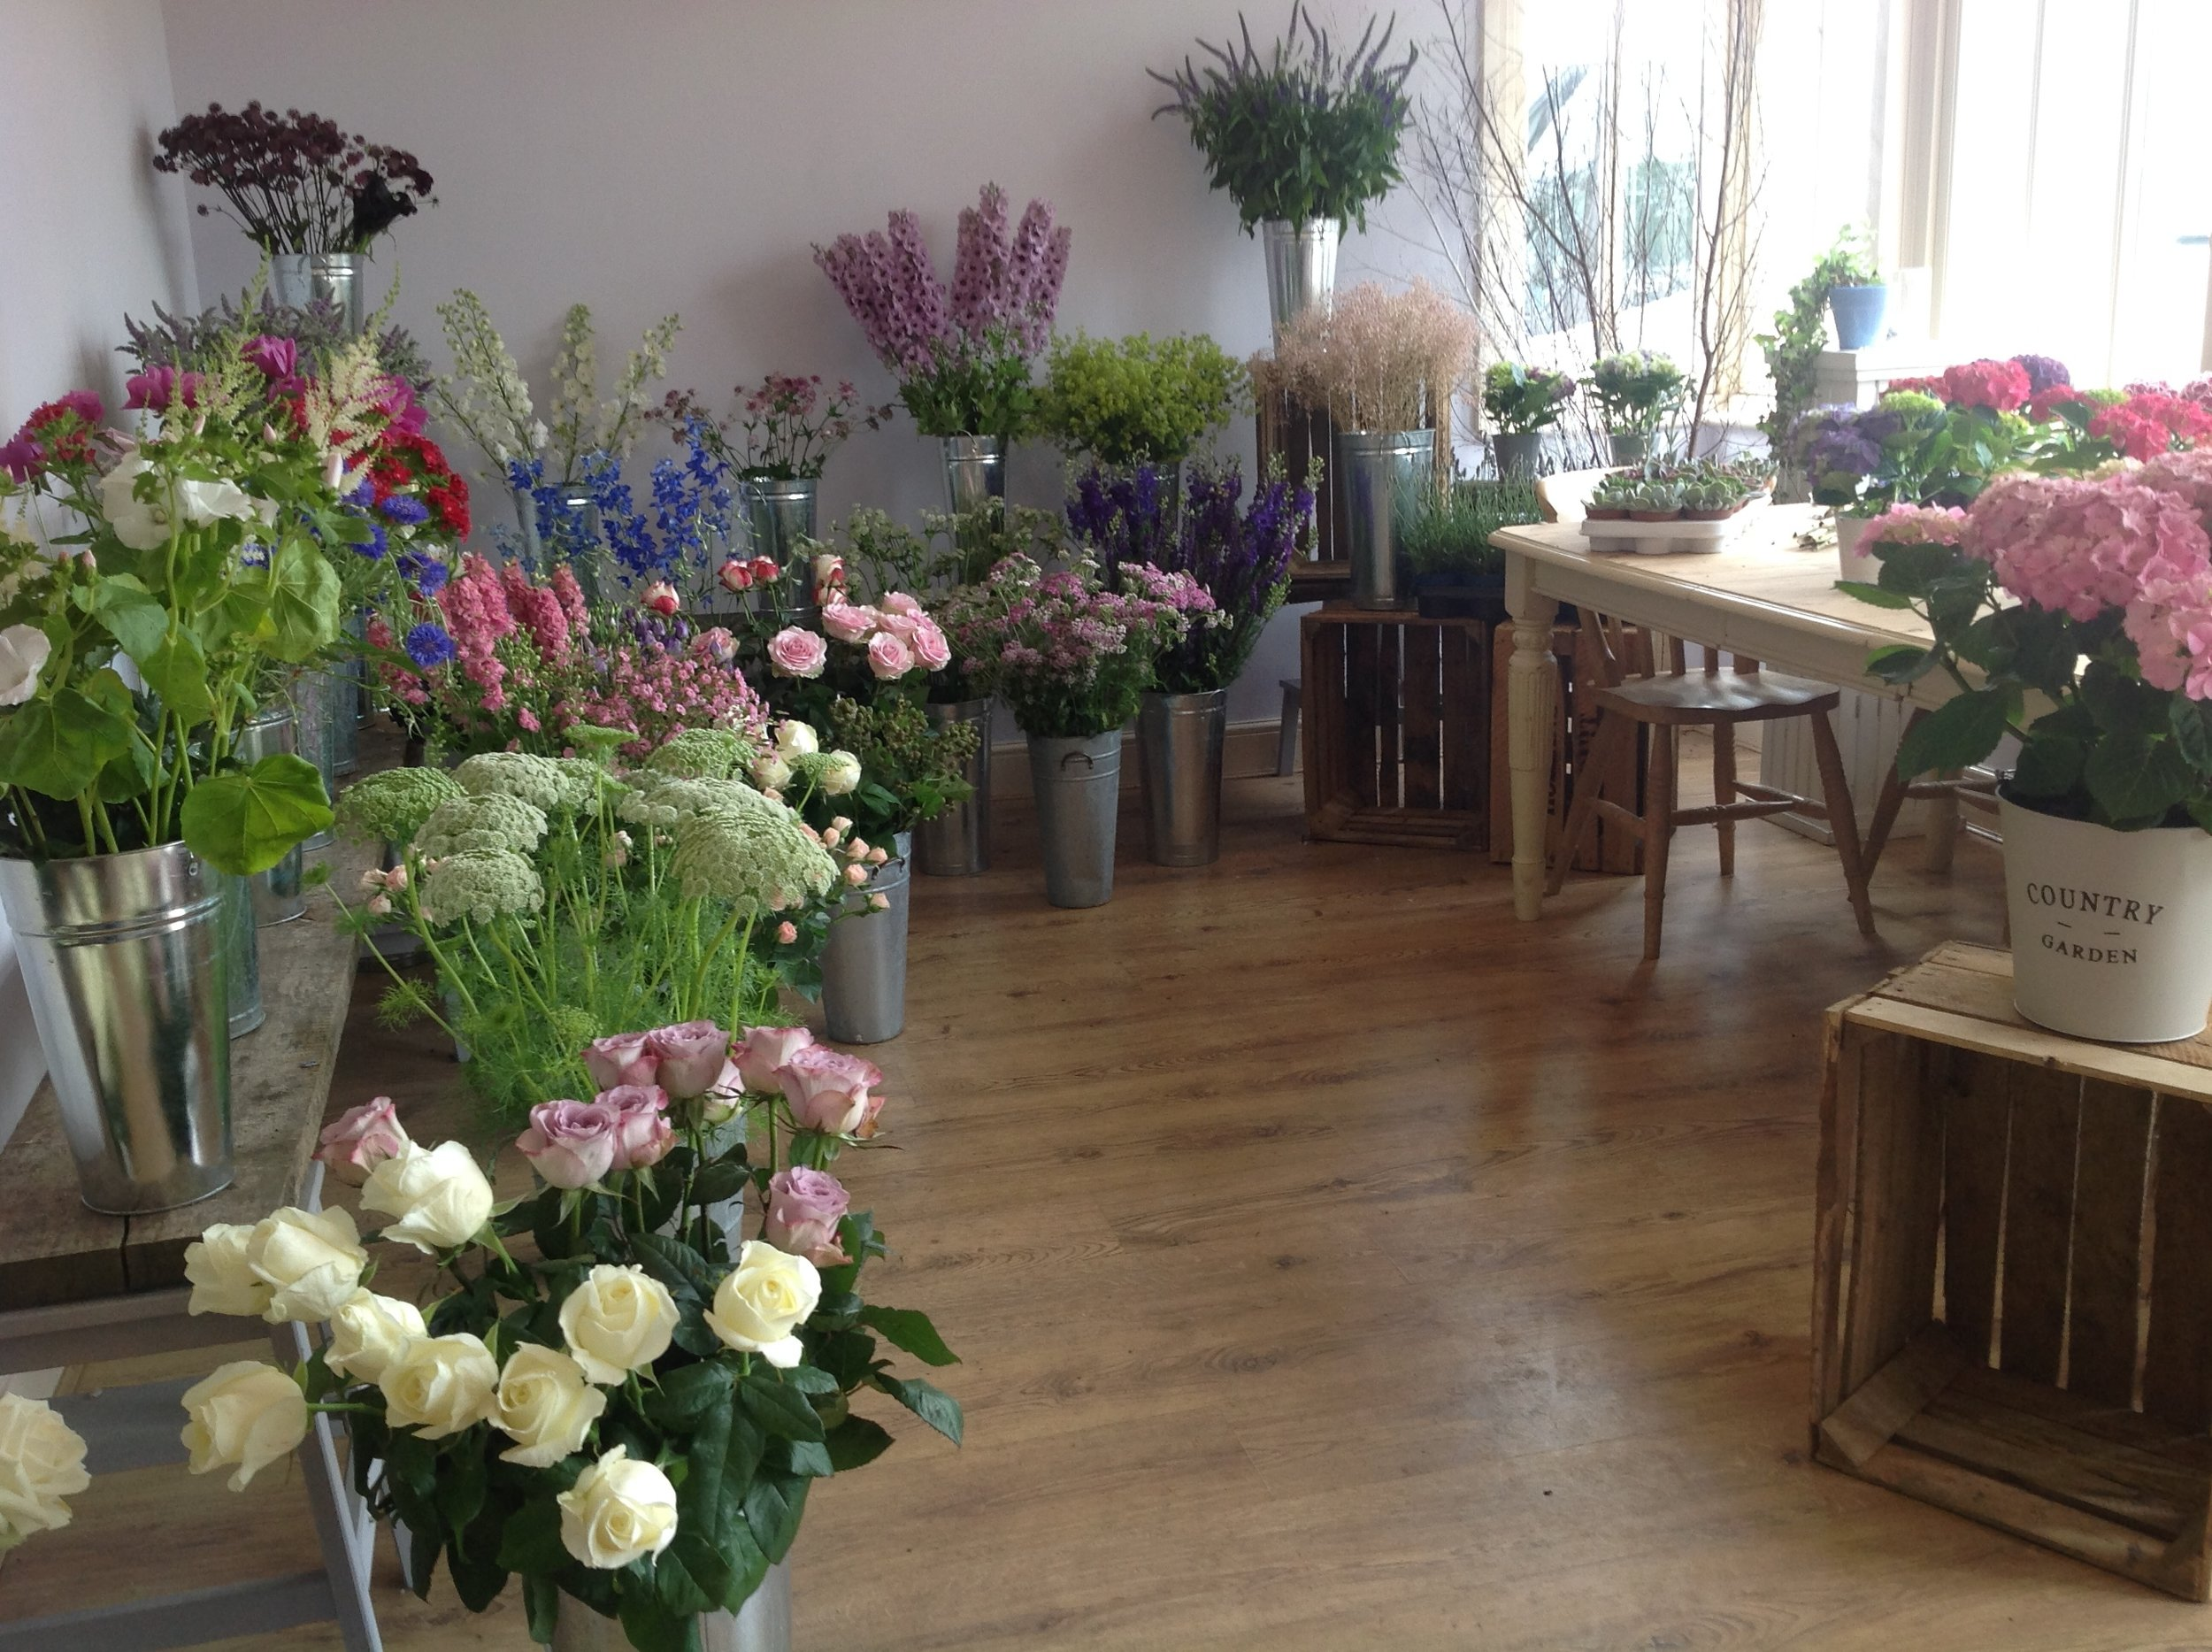 lilac_thyme-potted_flowers_shop.jpeg